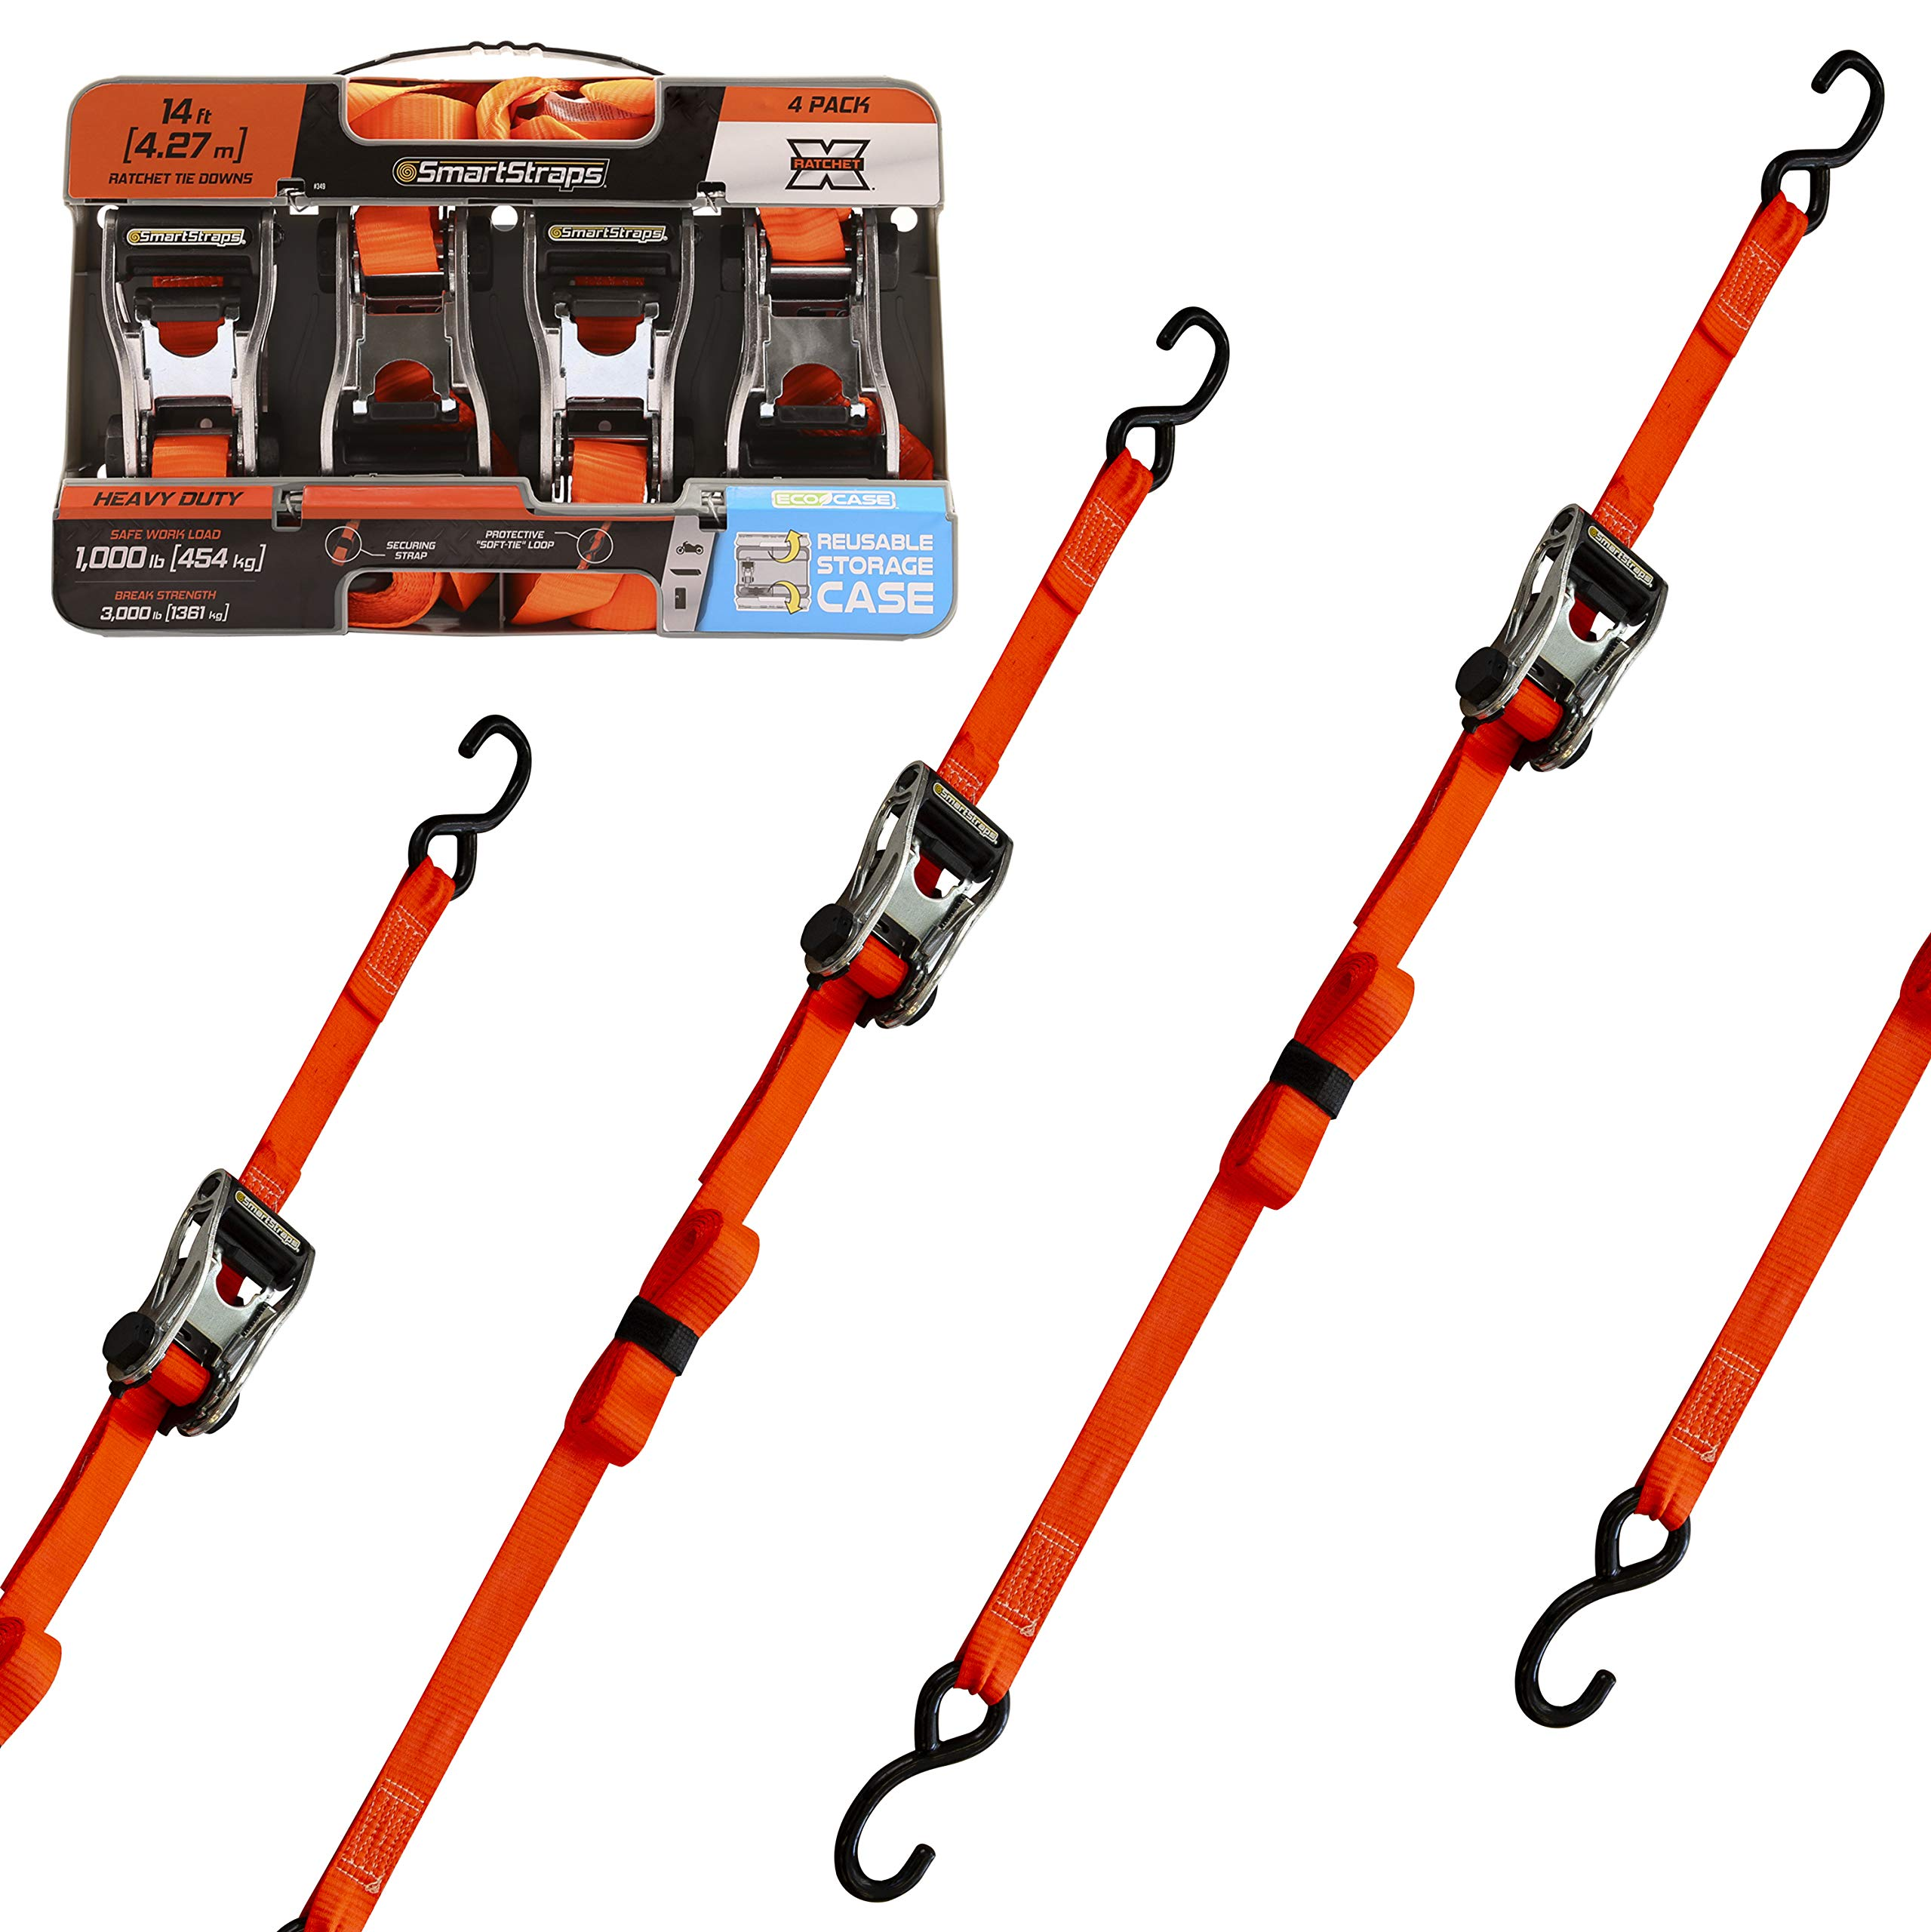 SmartStraps 14-Foot Premium Ratchet Straps (4pk) 3,000 lbs Break Strength – 1,000 lbs Safe Work Load – Haul Heavy-Duty Loads Like Boats and Appliances – Strong, User-Friendly Ratchet Straps –